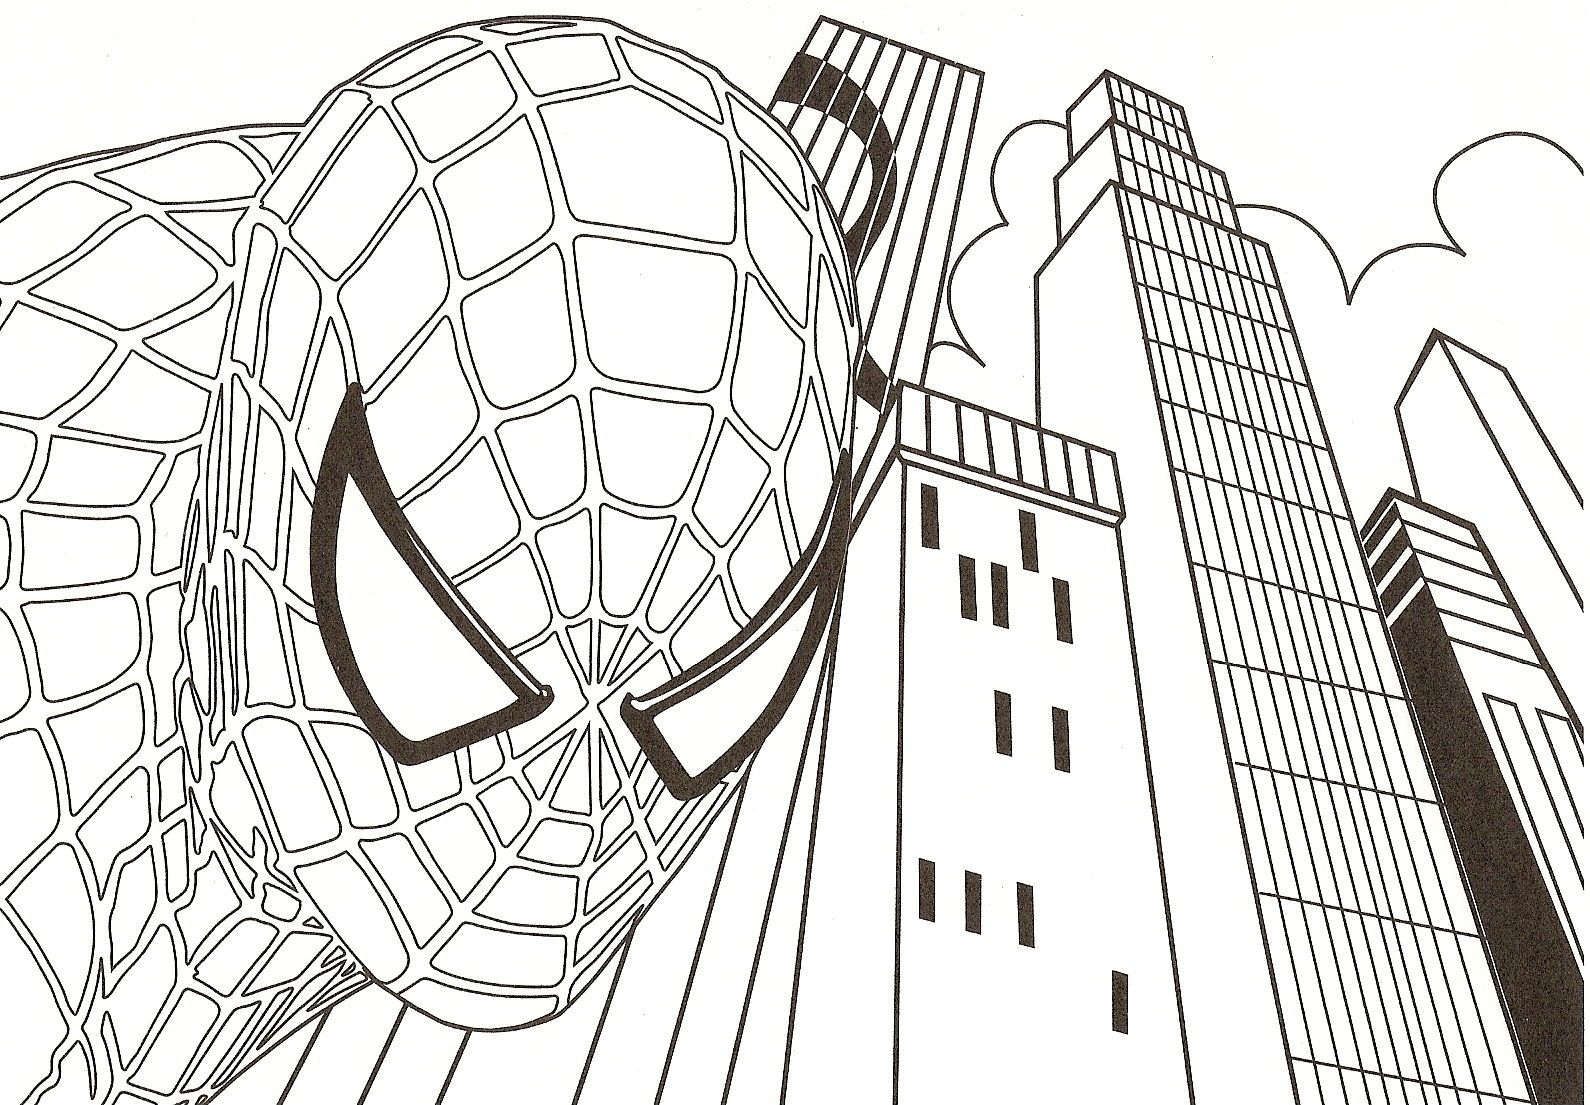 spiderman+coloring+pictures.jpg (1590×1105) | Coloring - Young/Teen ...